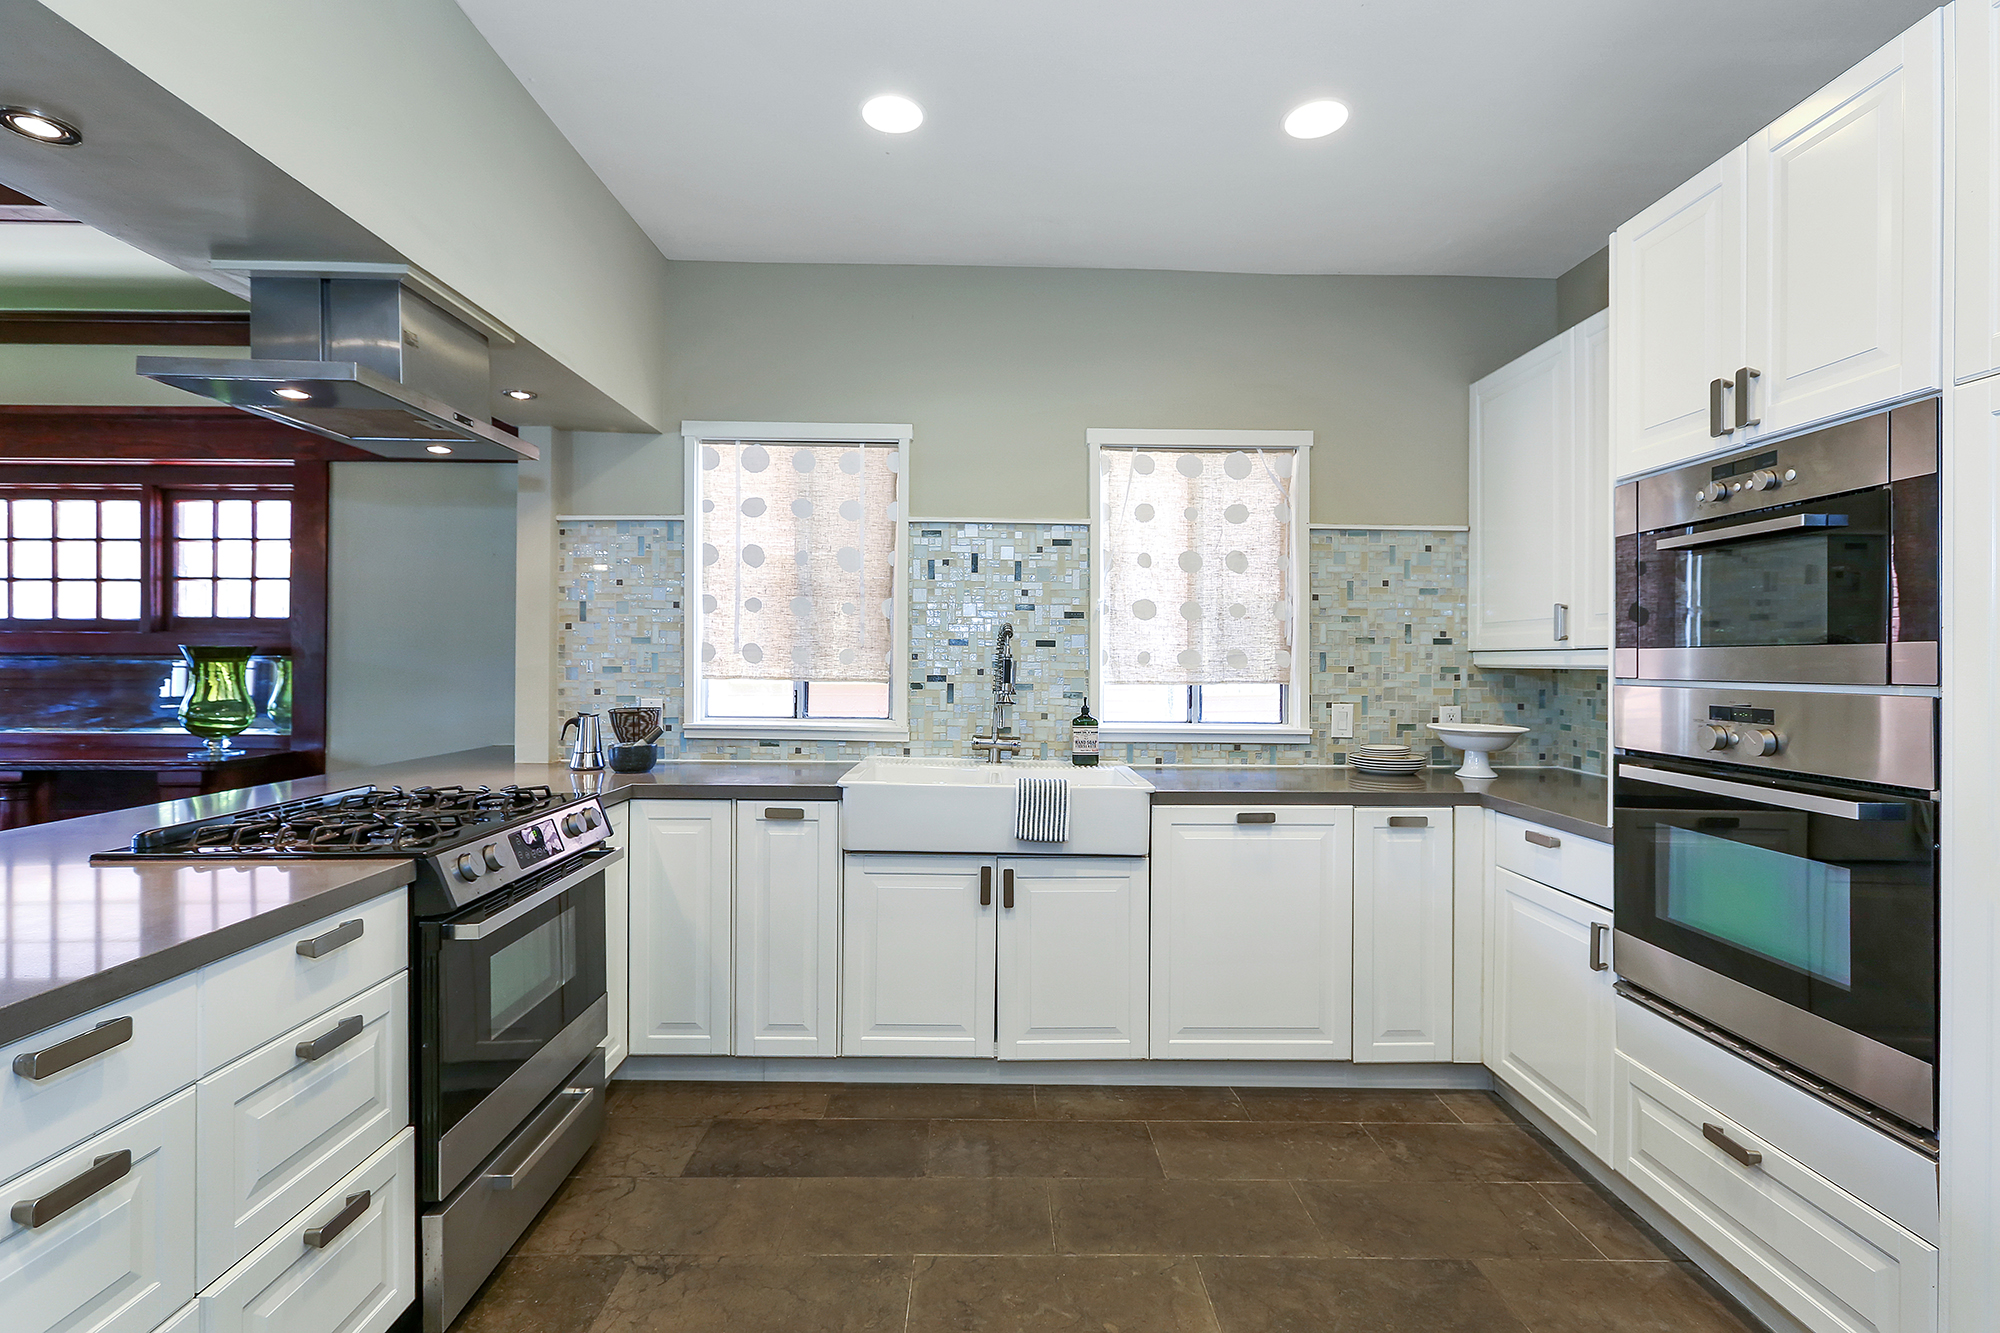 The kitchen, which features stainless appliances and Anne Sacks tiles, is large enough for folks to congregate in as dinner is being prepared.